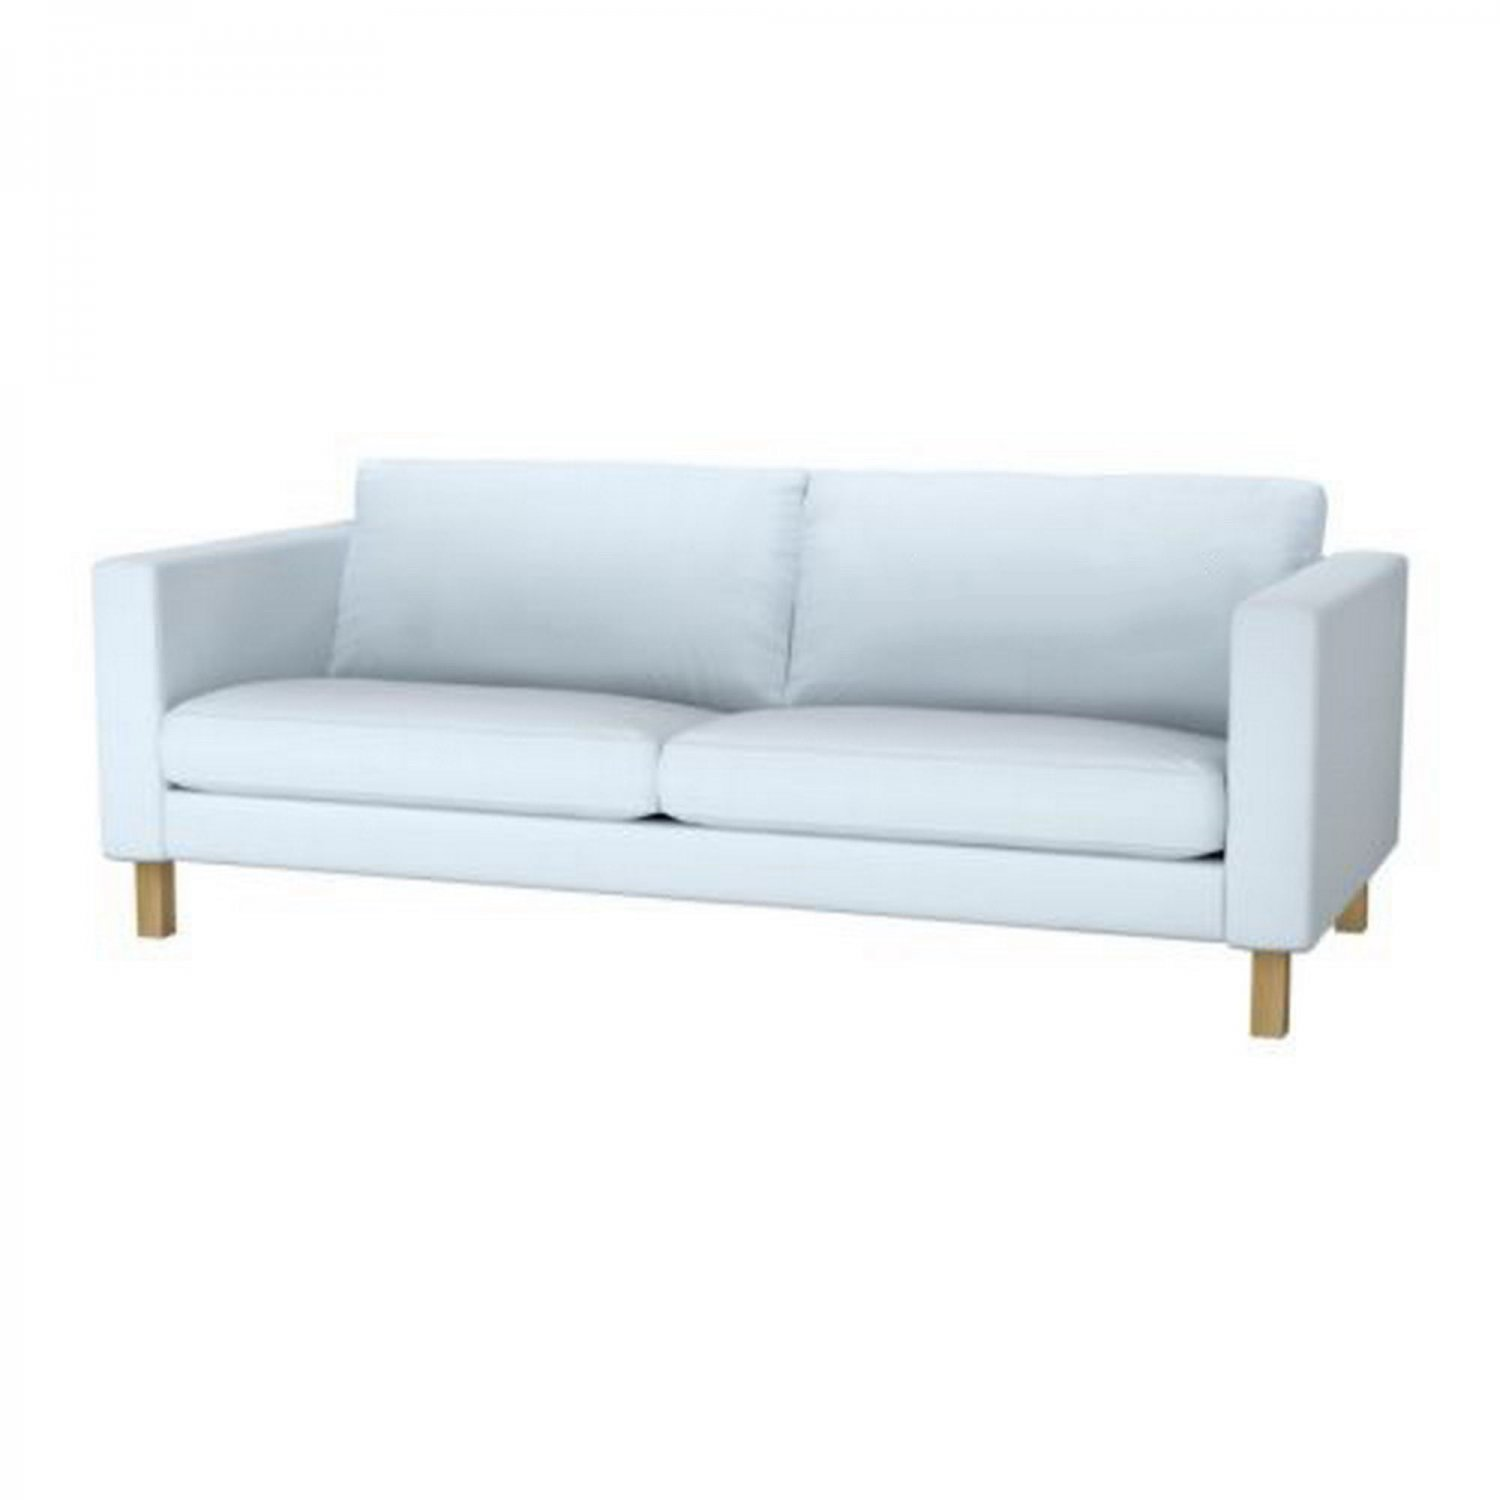 Light blue sofa slipcover ektorp cover two seat sofa nordvalla light blue ikea Blue loveseat slipcover